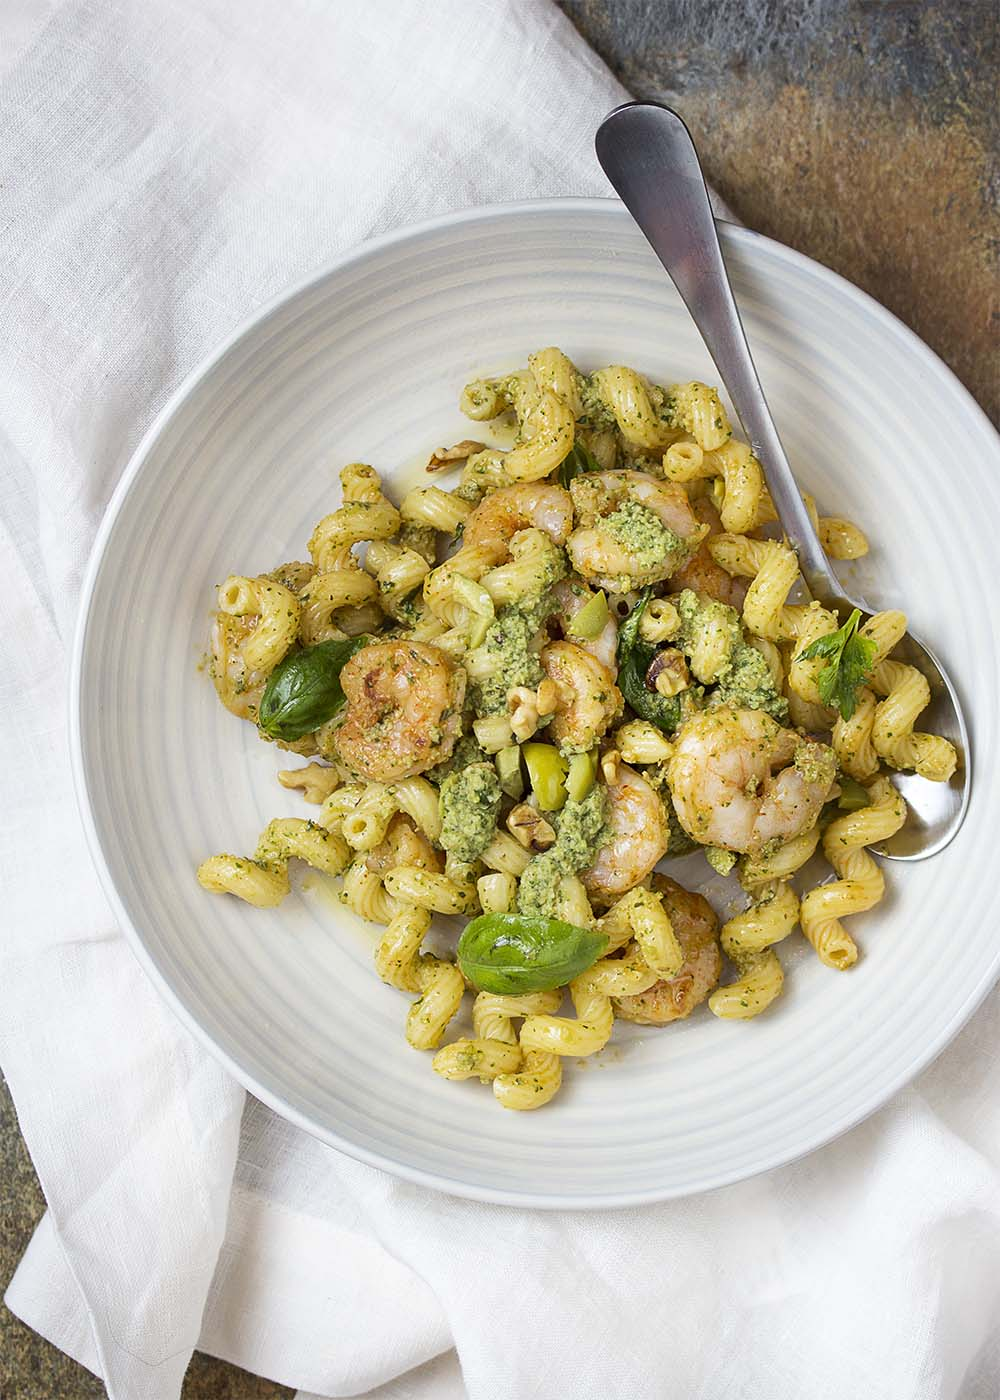 Top view of a bowl of pasta and shrimp, topped with basil leaves and walnuts.